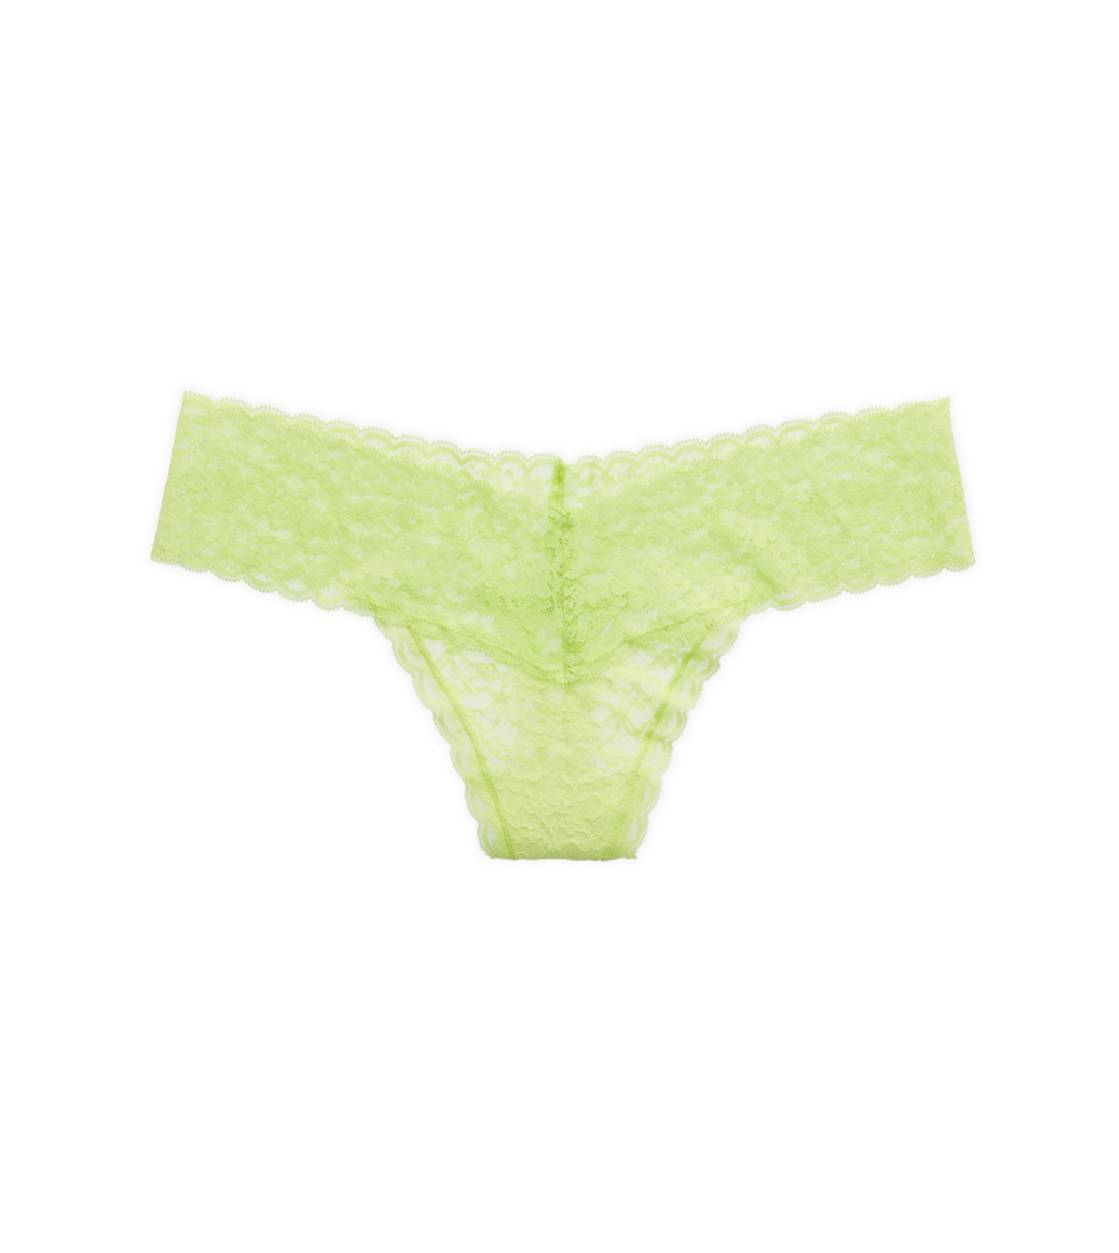 Sharp Green Aerie Vintage Lace Thong